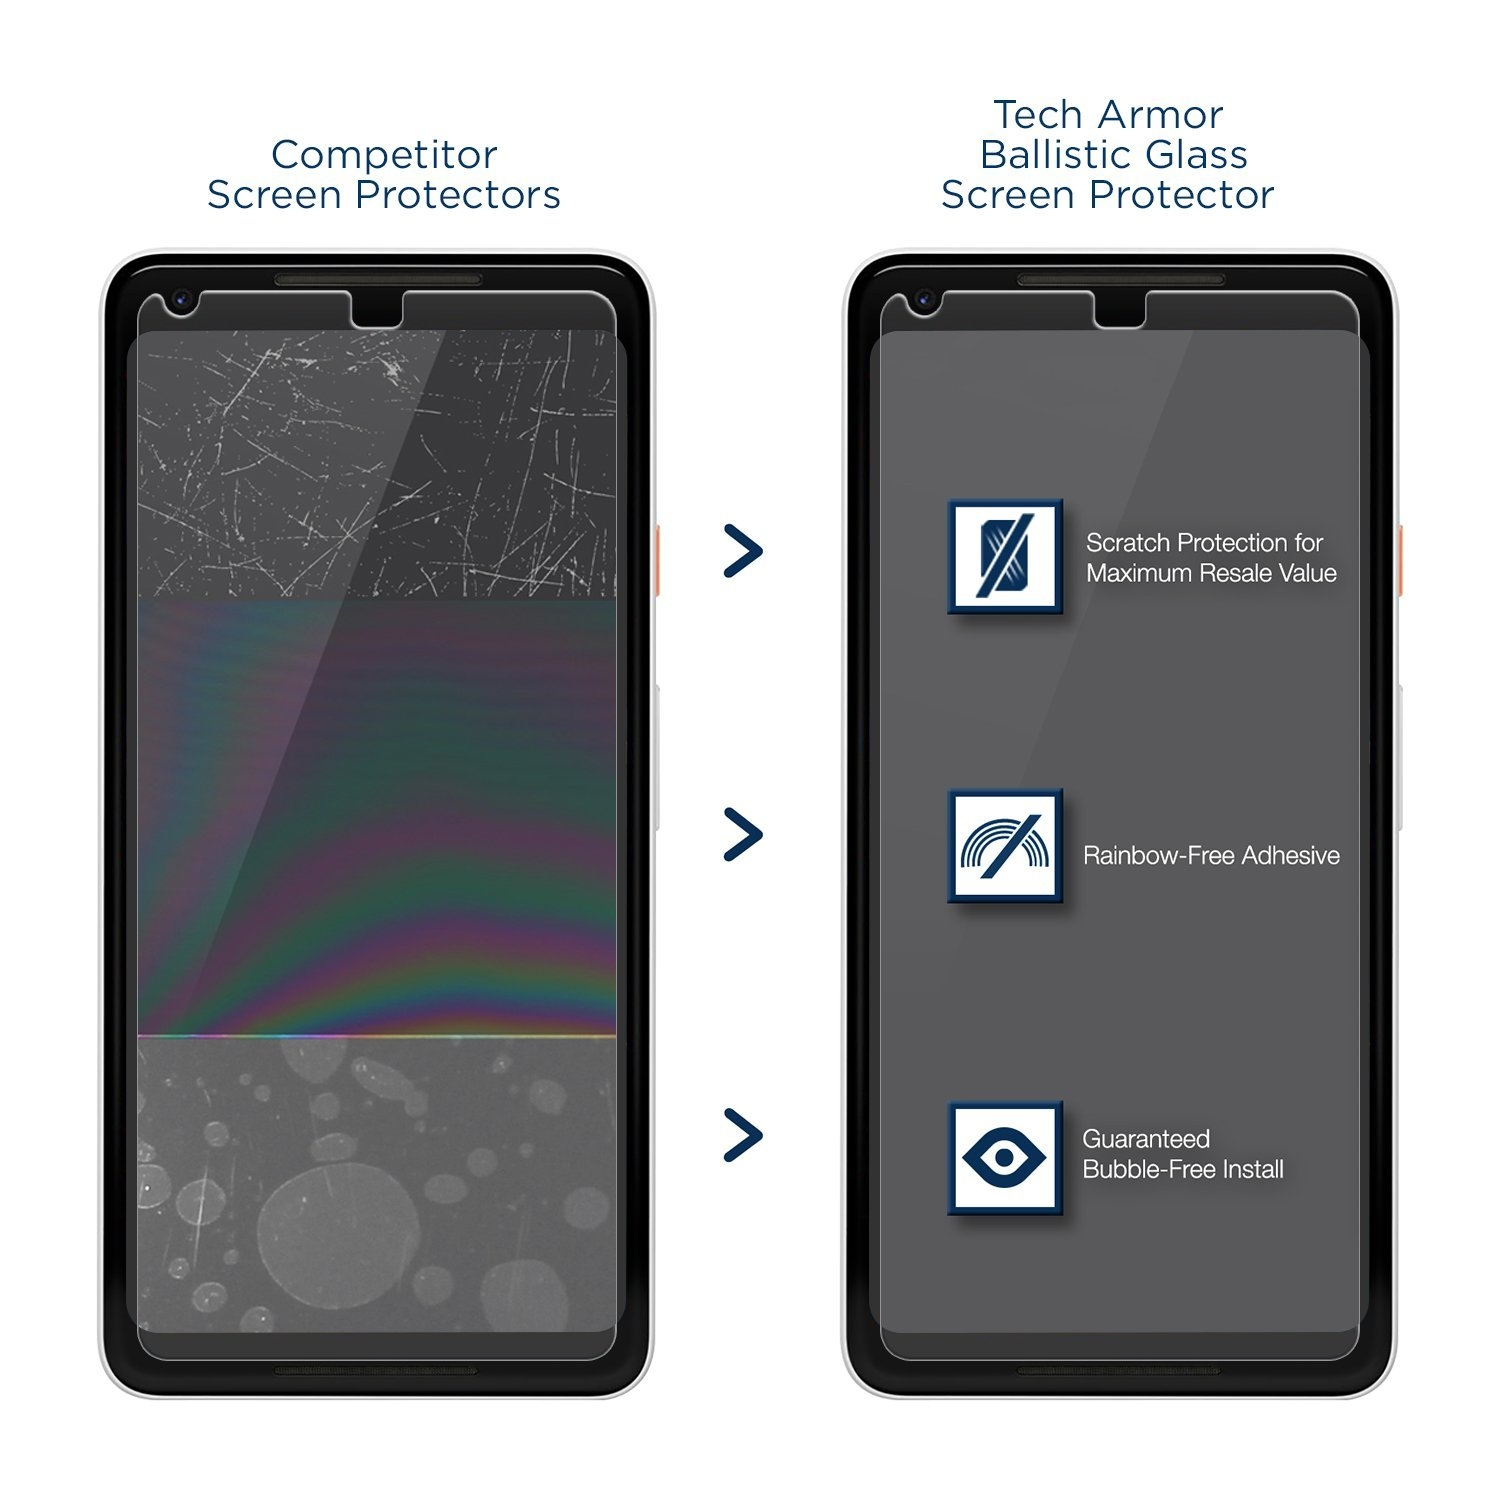 Ballistic Glass Screen Protector